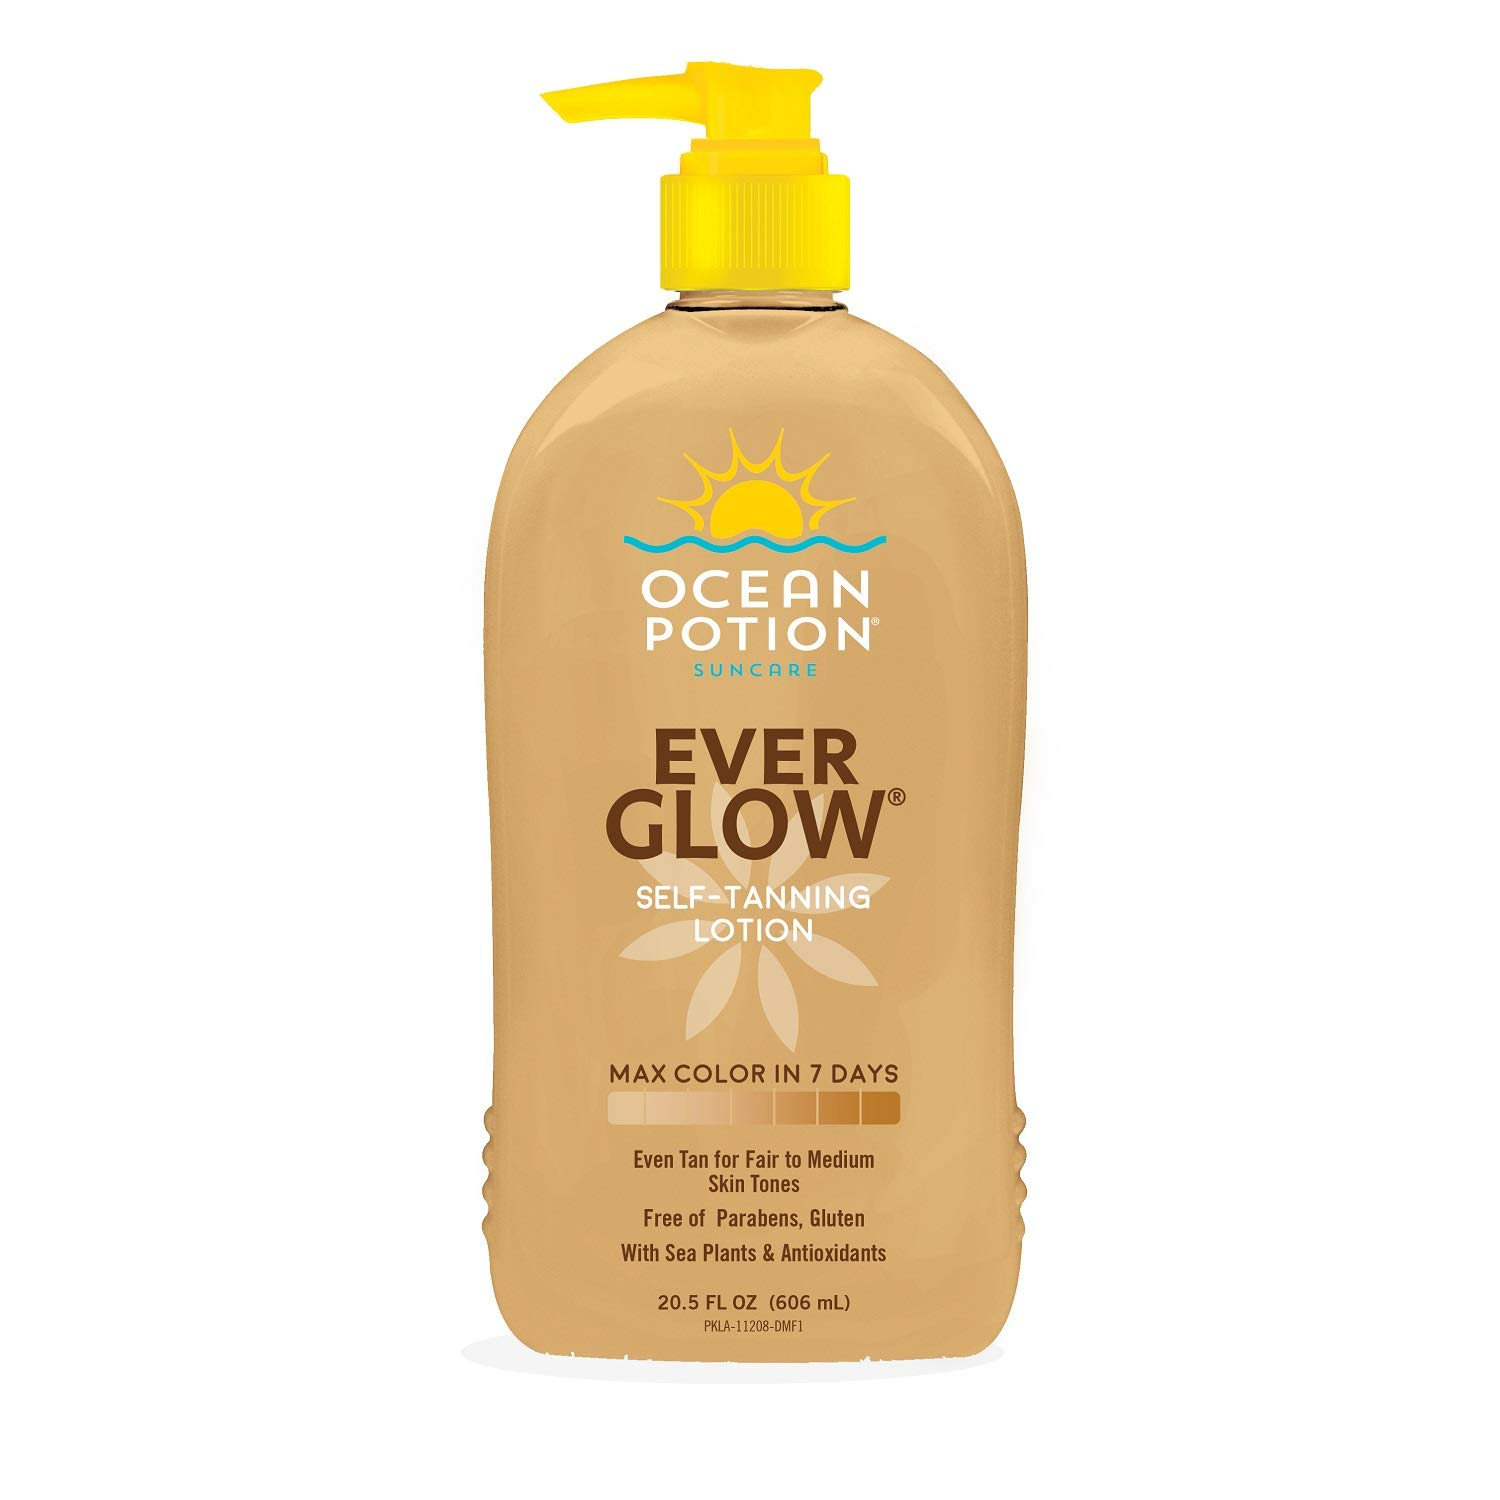 Ocean Potion - ever glow self tanning lotion - 20.5 Ounces - 2 Pack by Ocean Potion